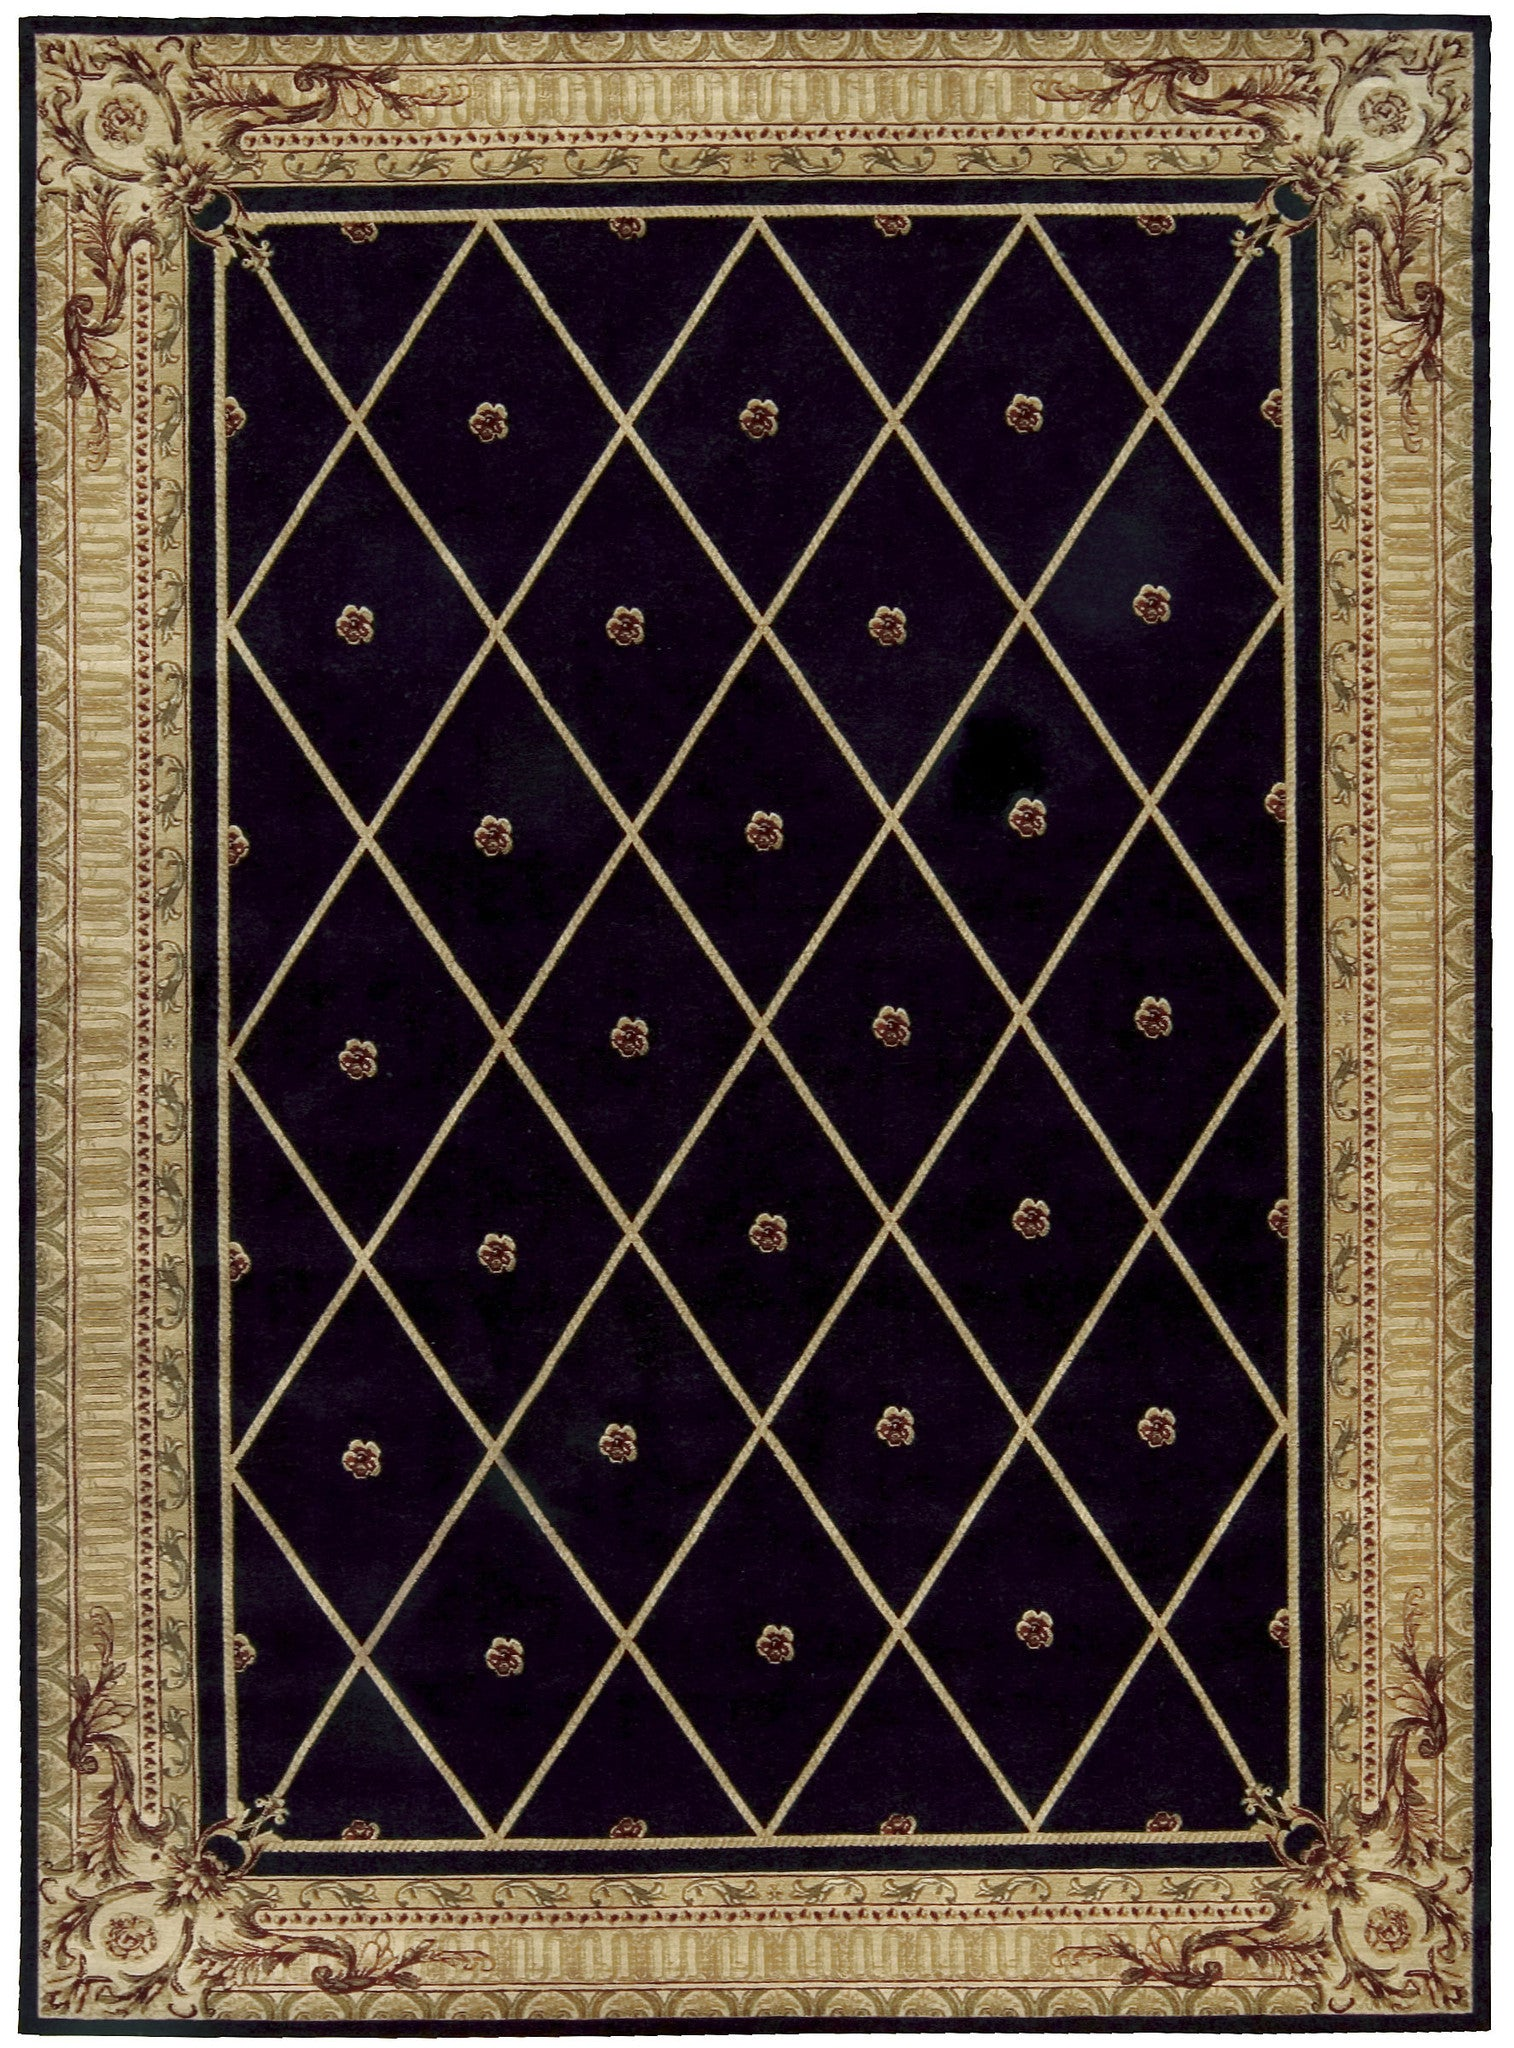 Nourison Ashton House Black Area Rug AS03 BLK